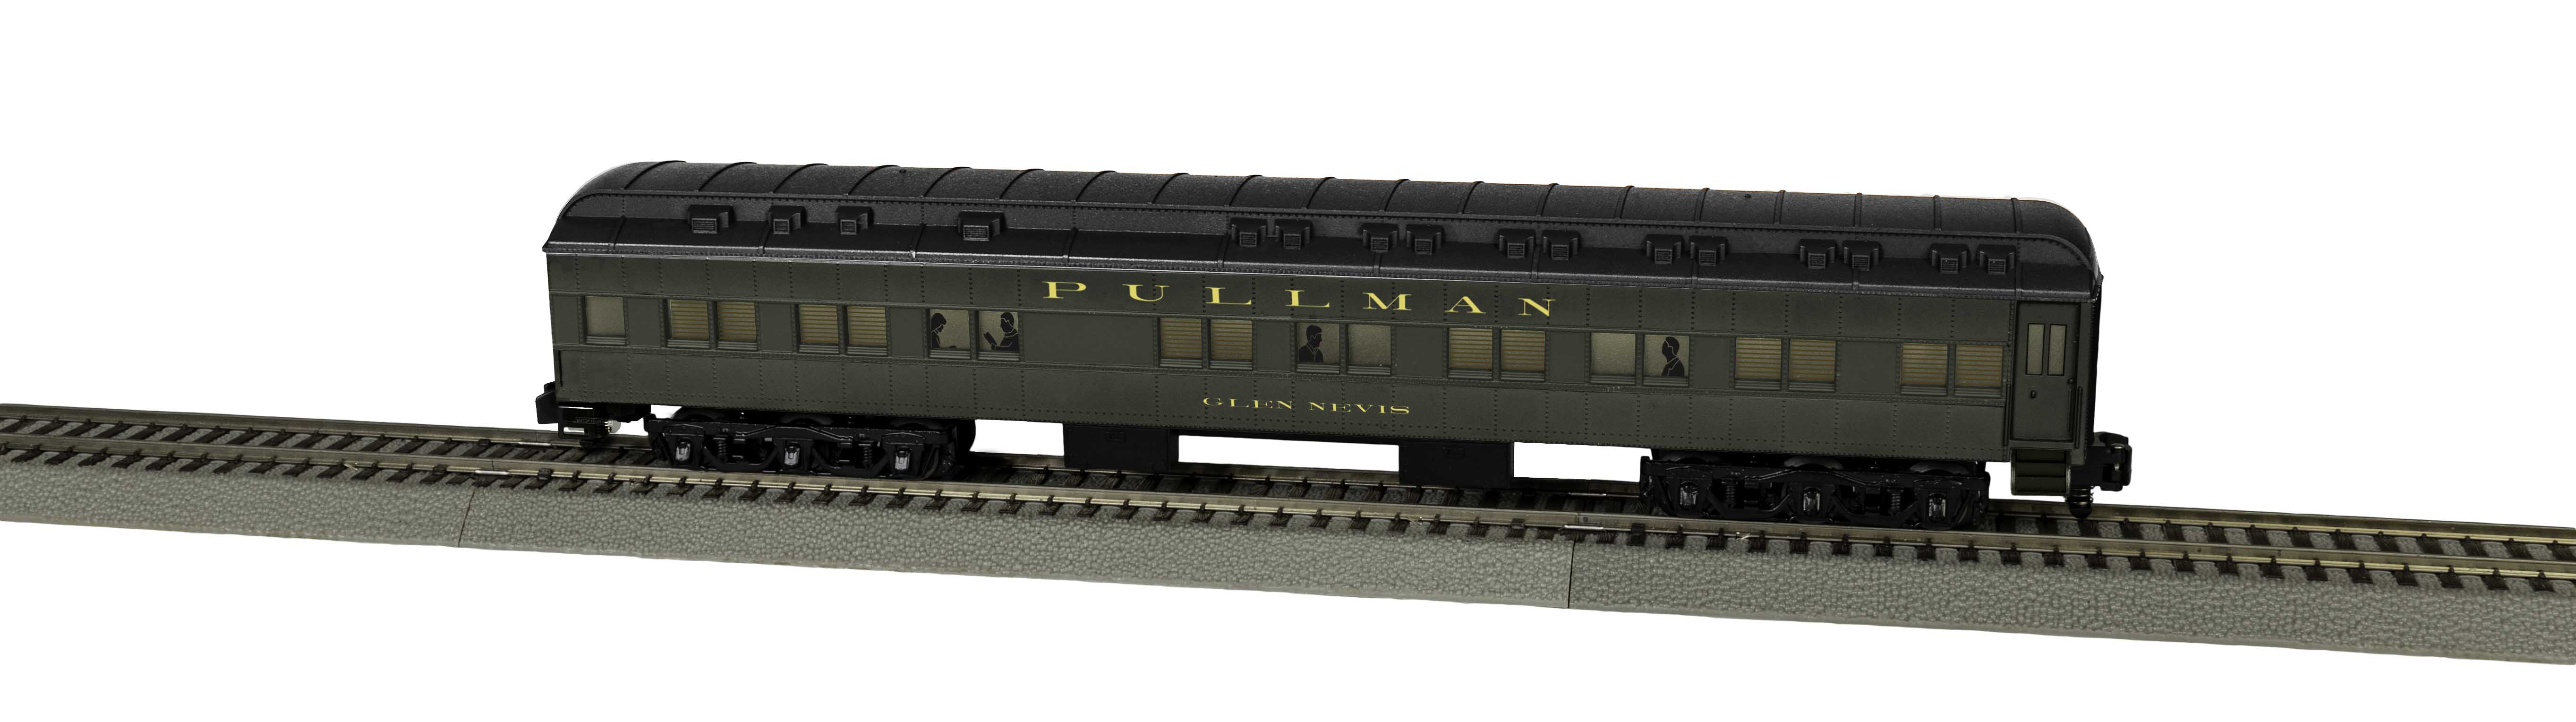 Lionel 2019412 S Pullman Heavyweight Sleeper Glen Nevis